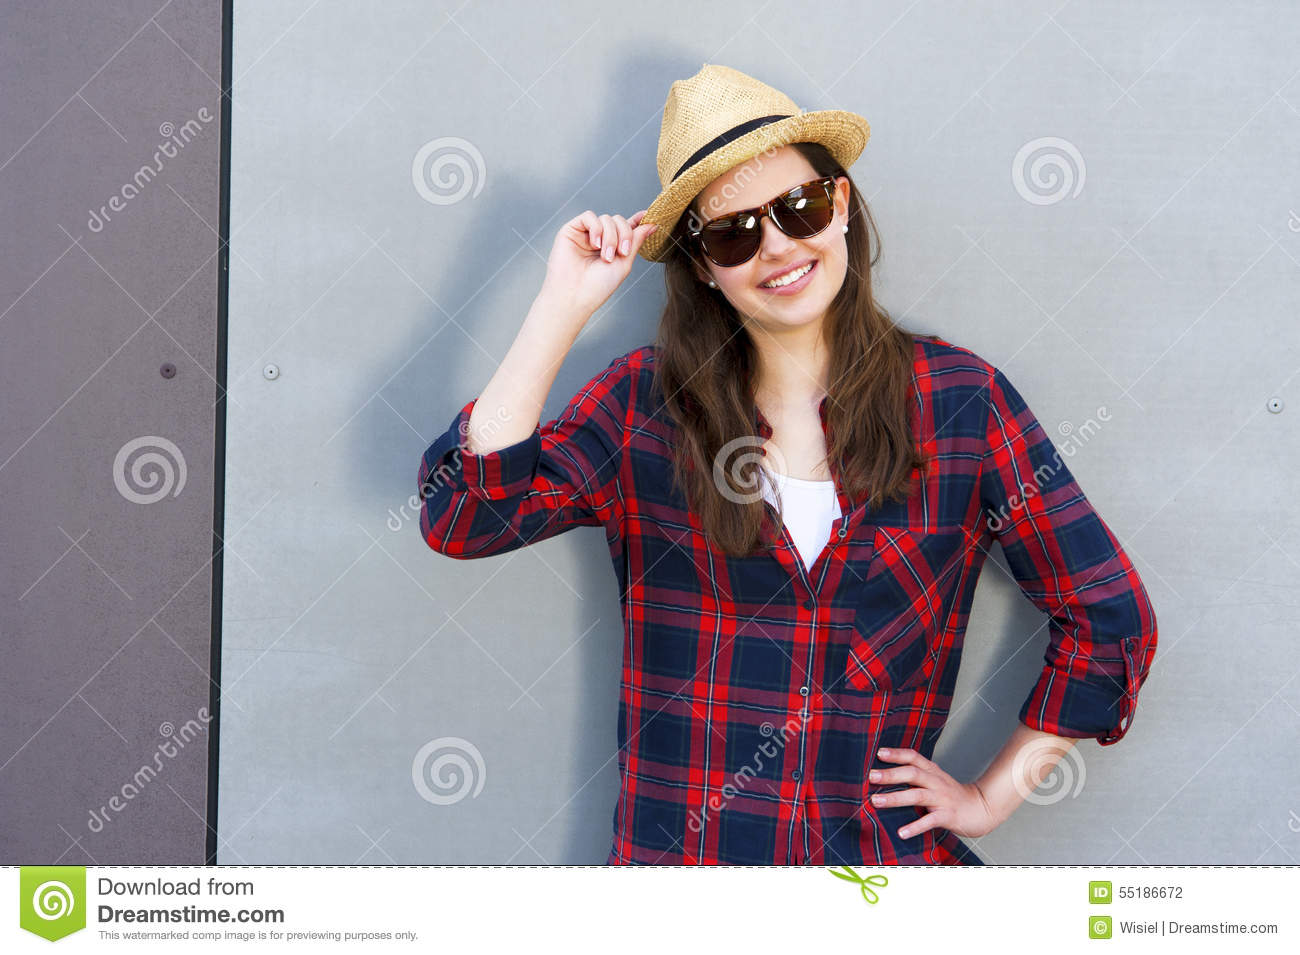 Modern Youth Royalty Free Stock Image 11510062